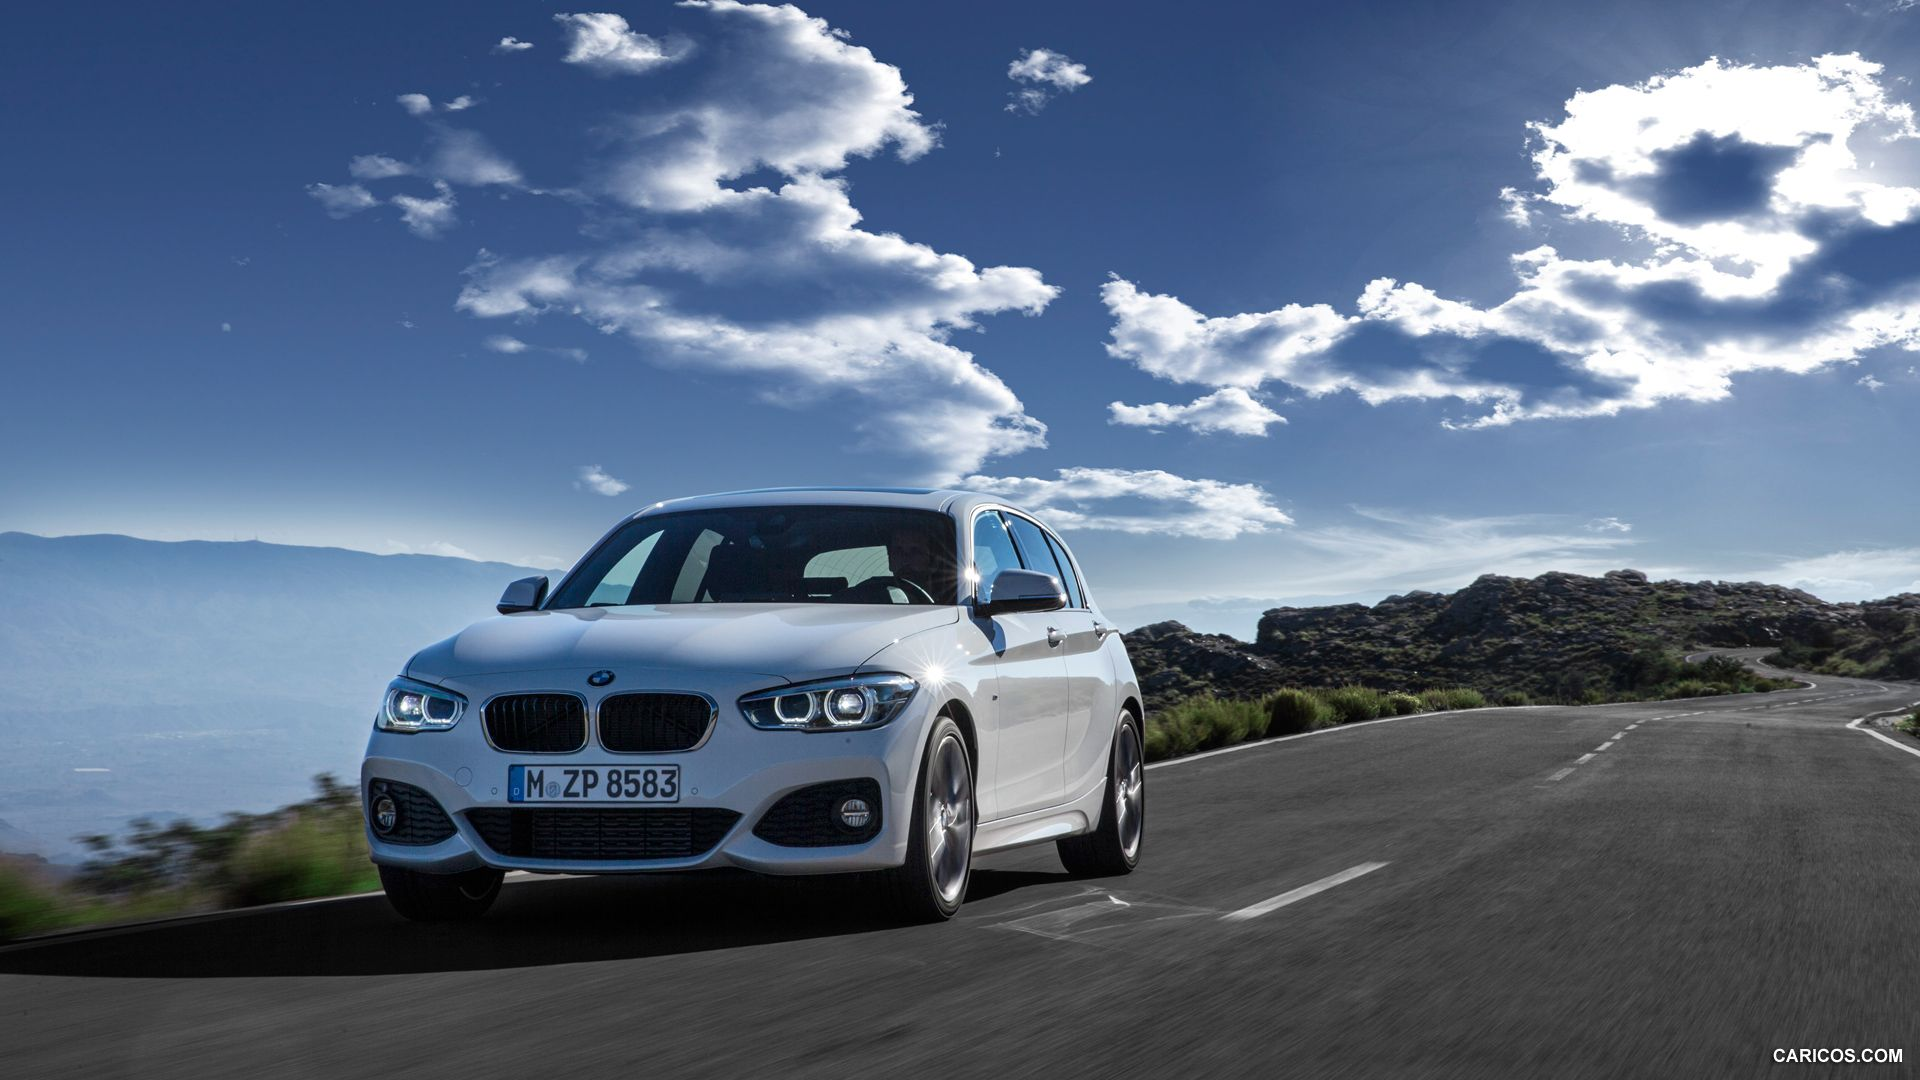 Bmw 1 Series Wallpapers Top Free Bmw 1 Series Backgrounds